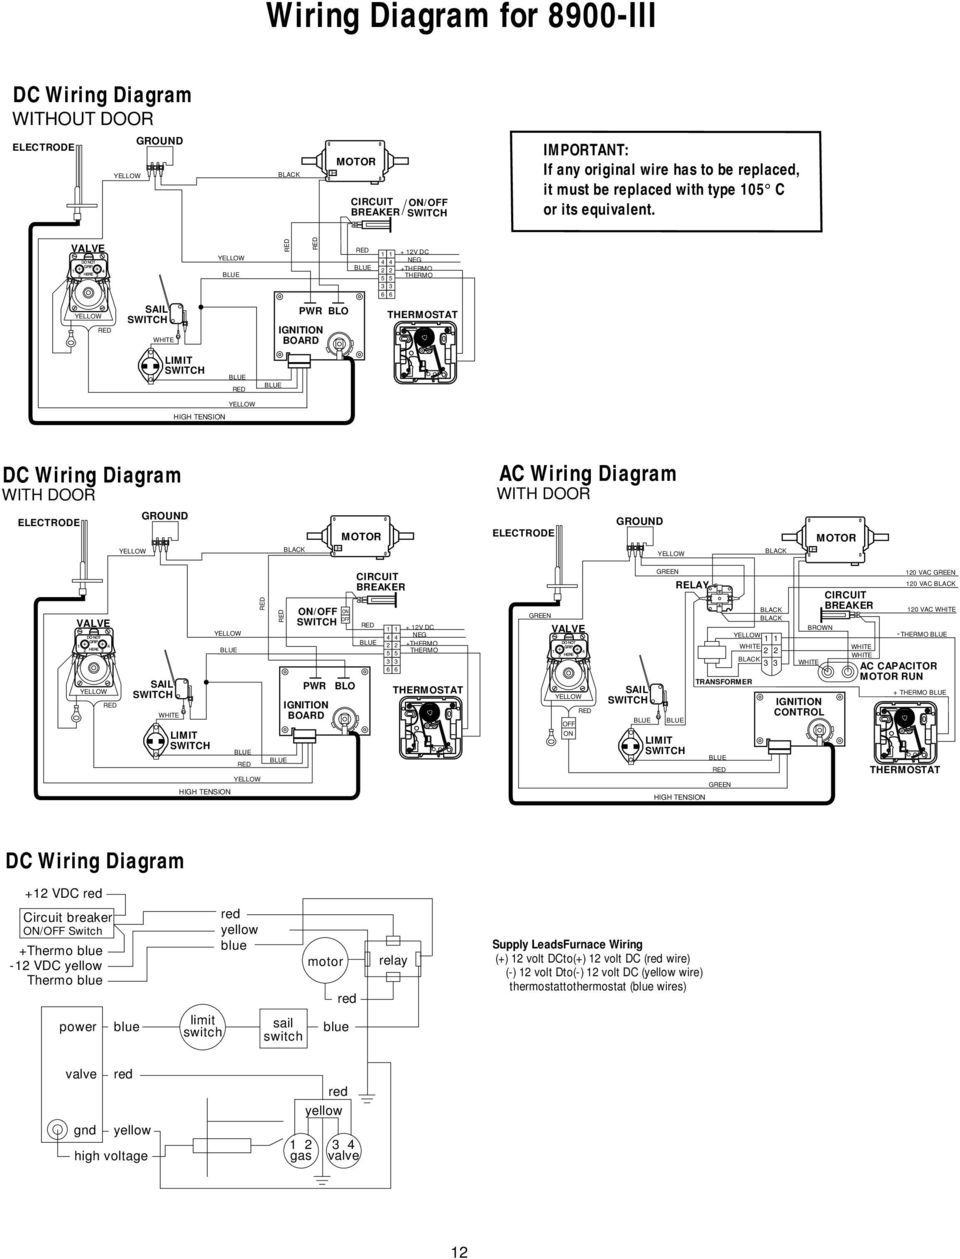 Atwood Service Department Introduction Pdf Fenwal Ignition Module Wiring Diagram Hvac Valve Yellow Blue Red 1 4 2 5 3 6